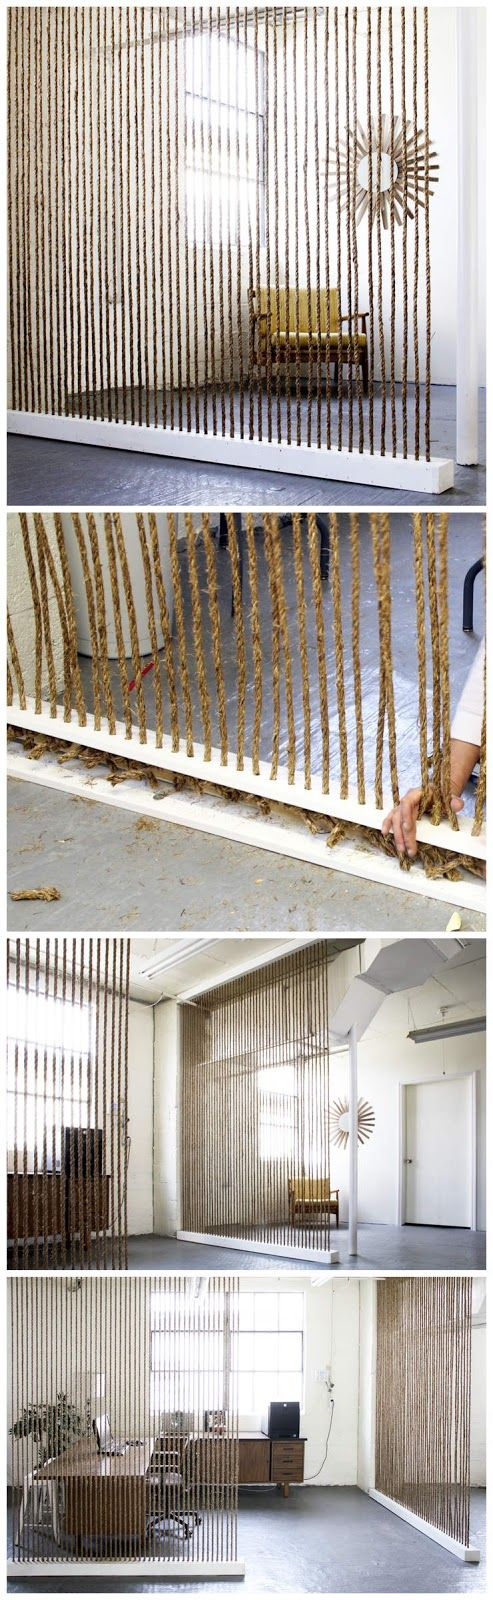 DIY Rope Wall - Architectural detail